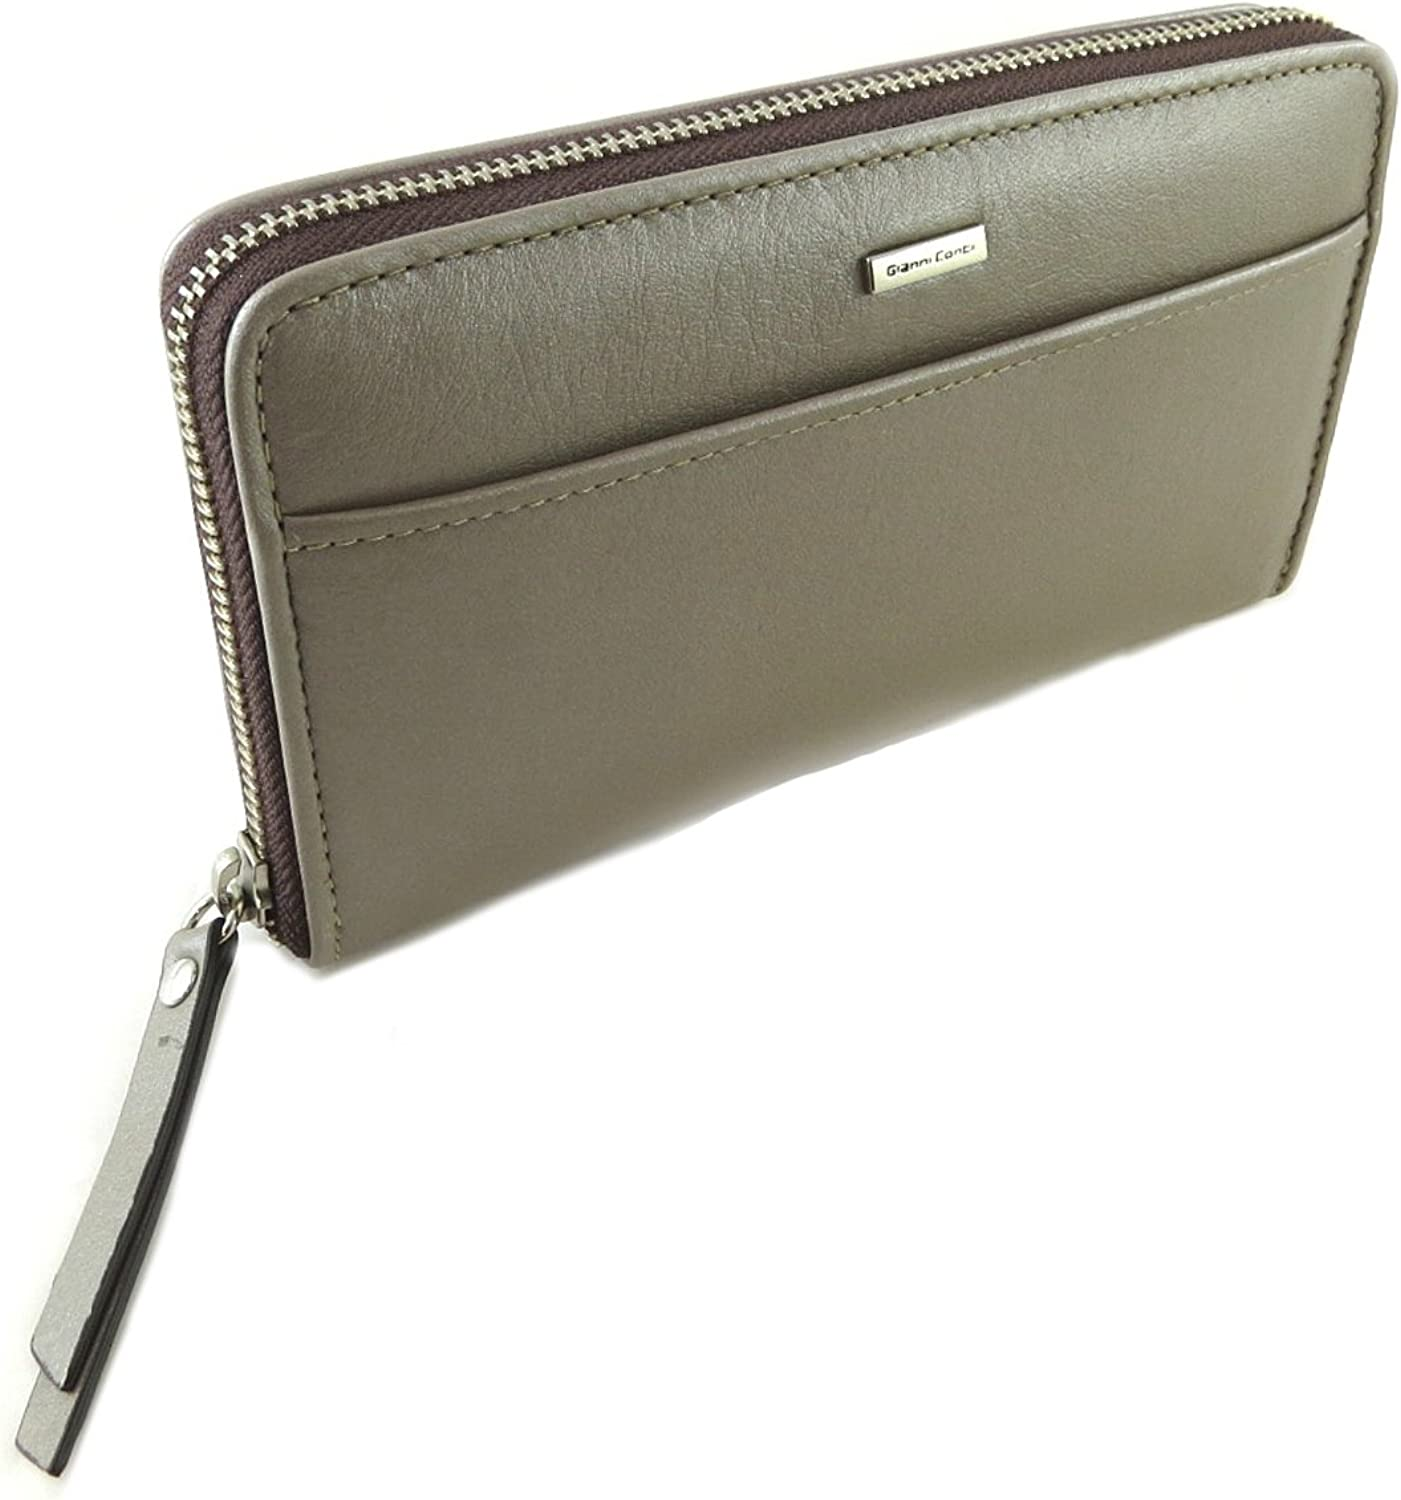 Gianni Conti [P9864]  Zip wallet + checkbook holder leather 'Gianni Conti' taupe  19x10.5x2.5 cm (7.48''x4.13''x0.98'').